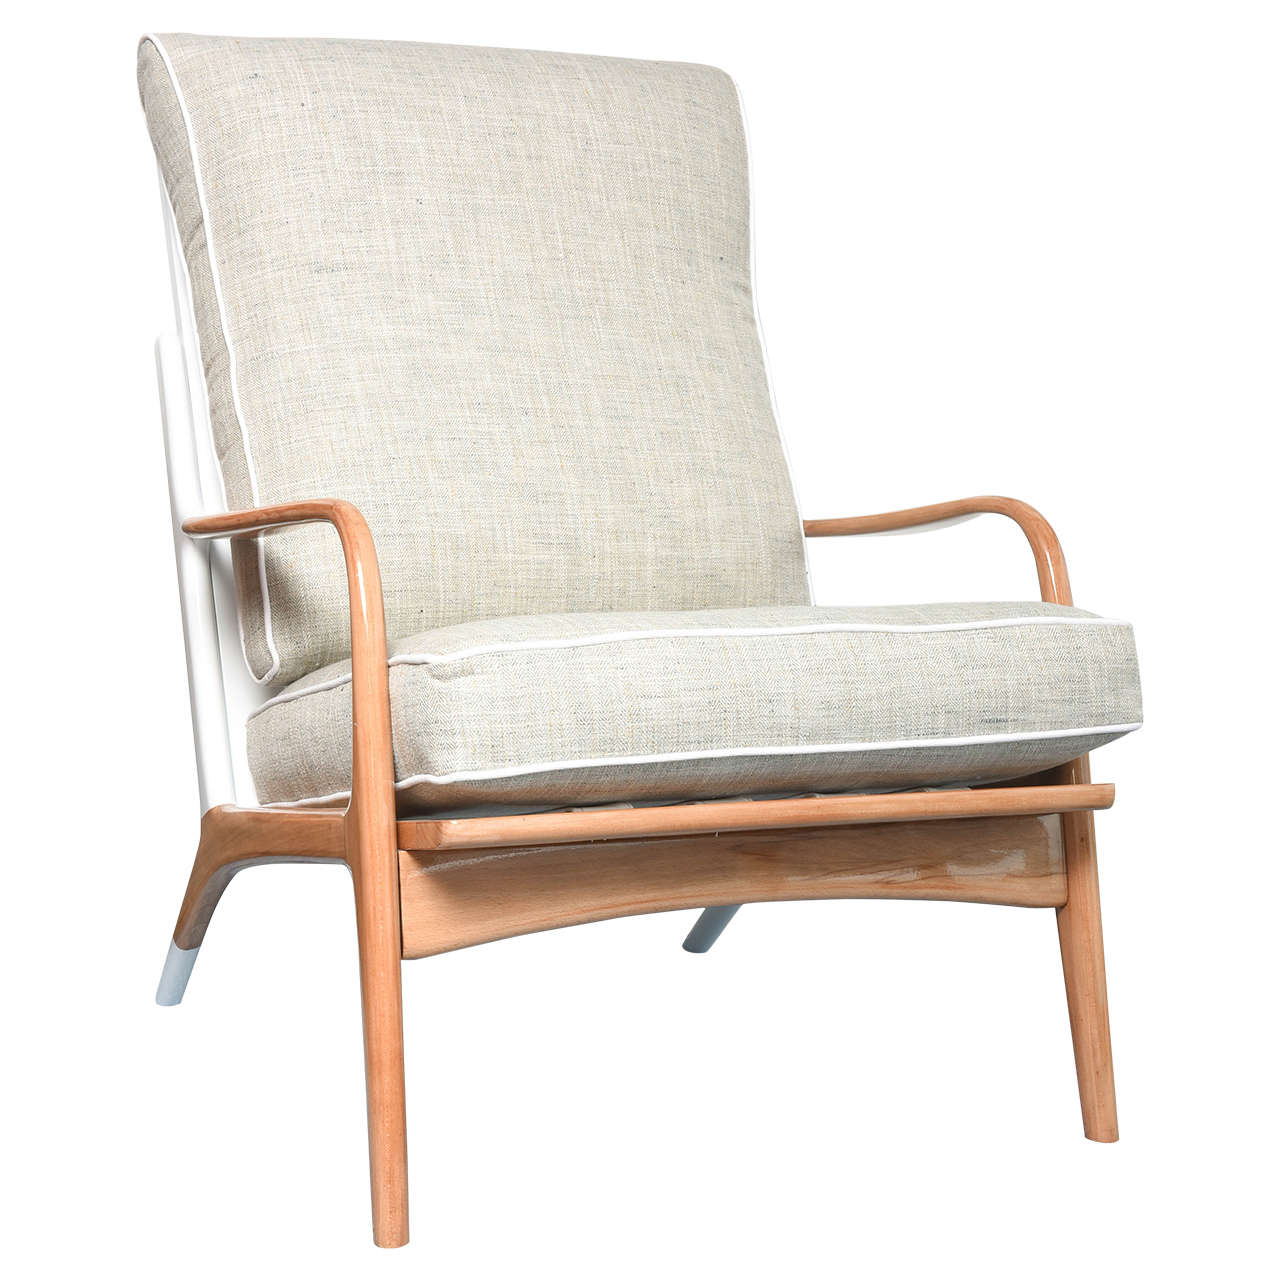 Mid Century White And Wood Lounge Chair For Sale At 1stdibs